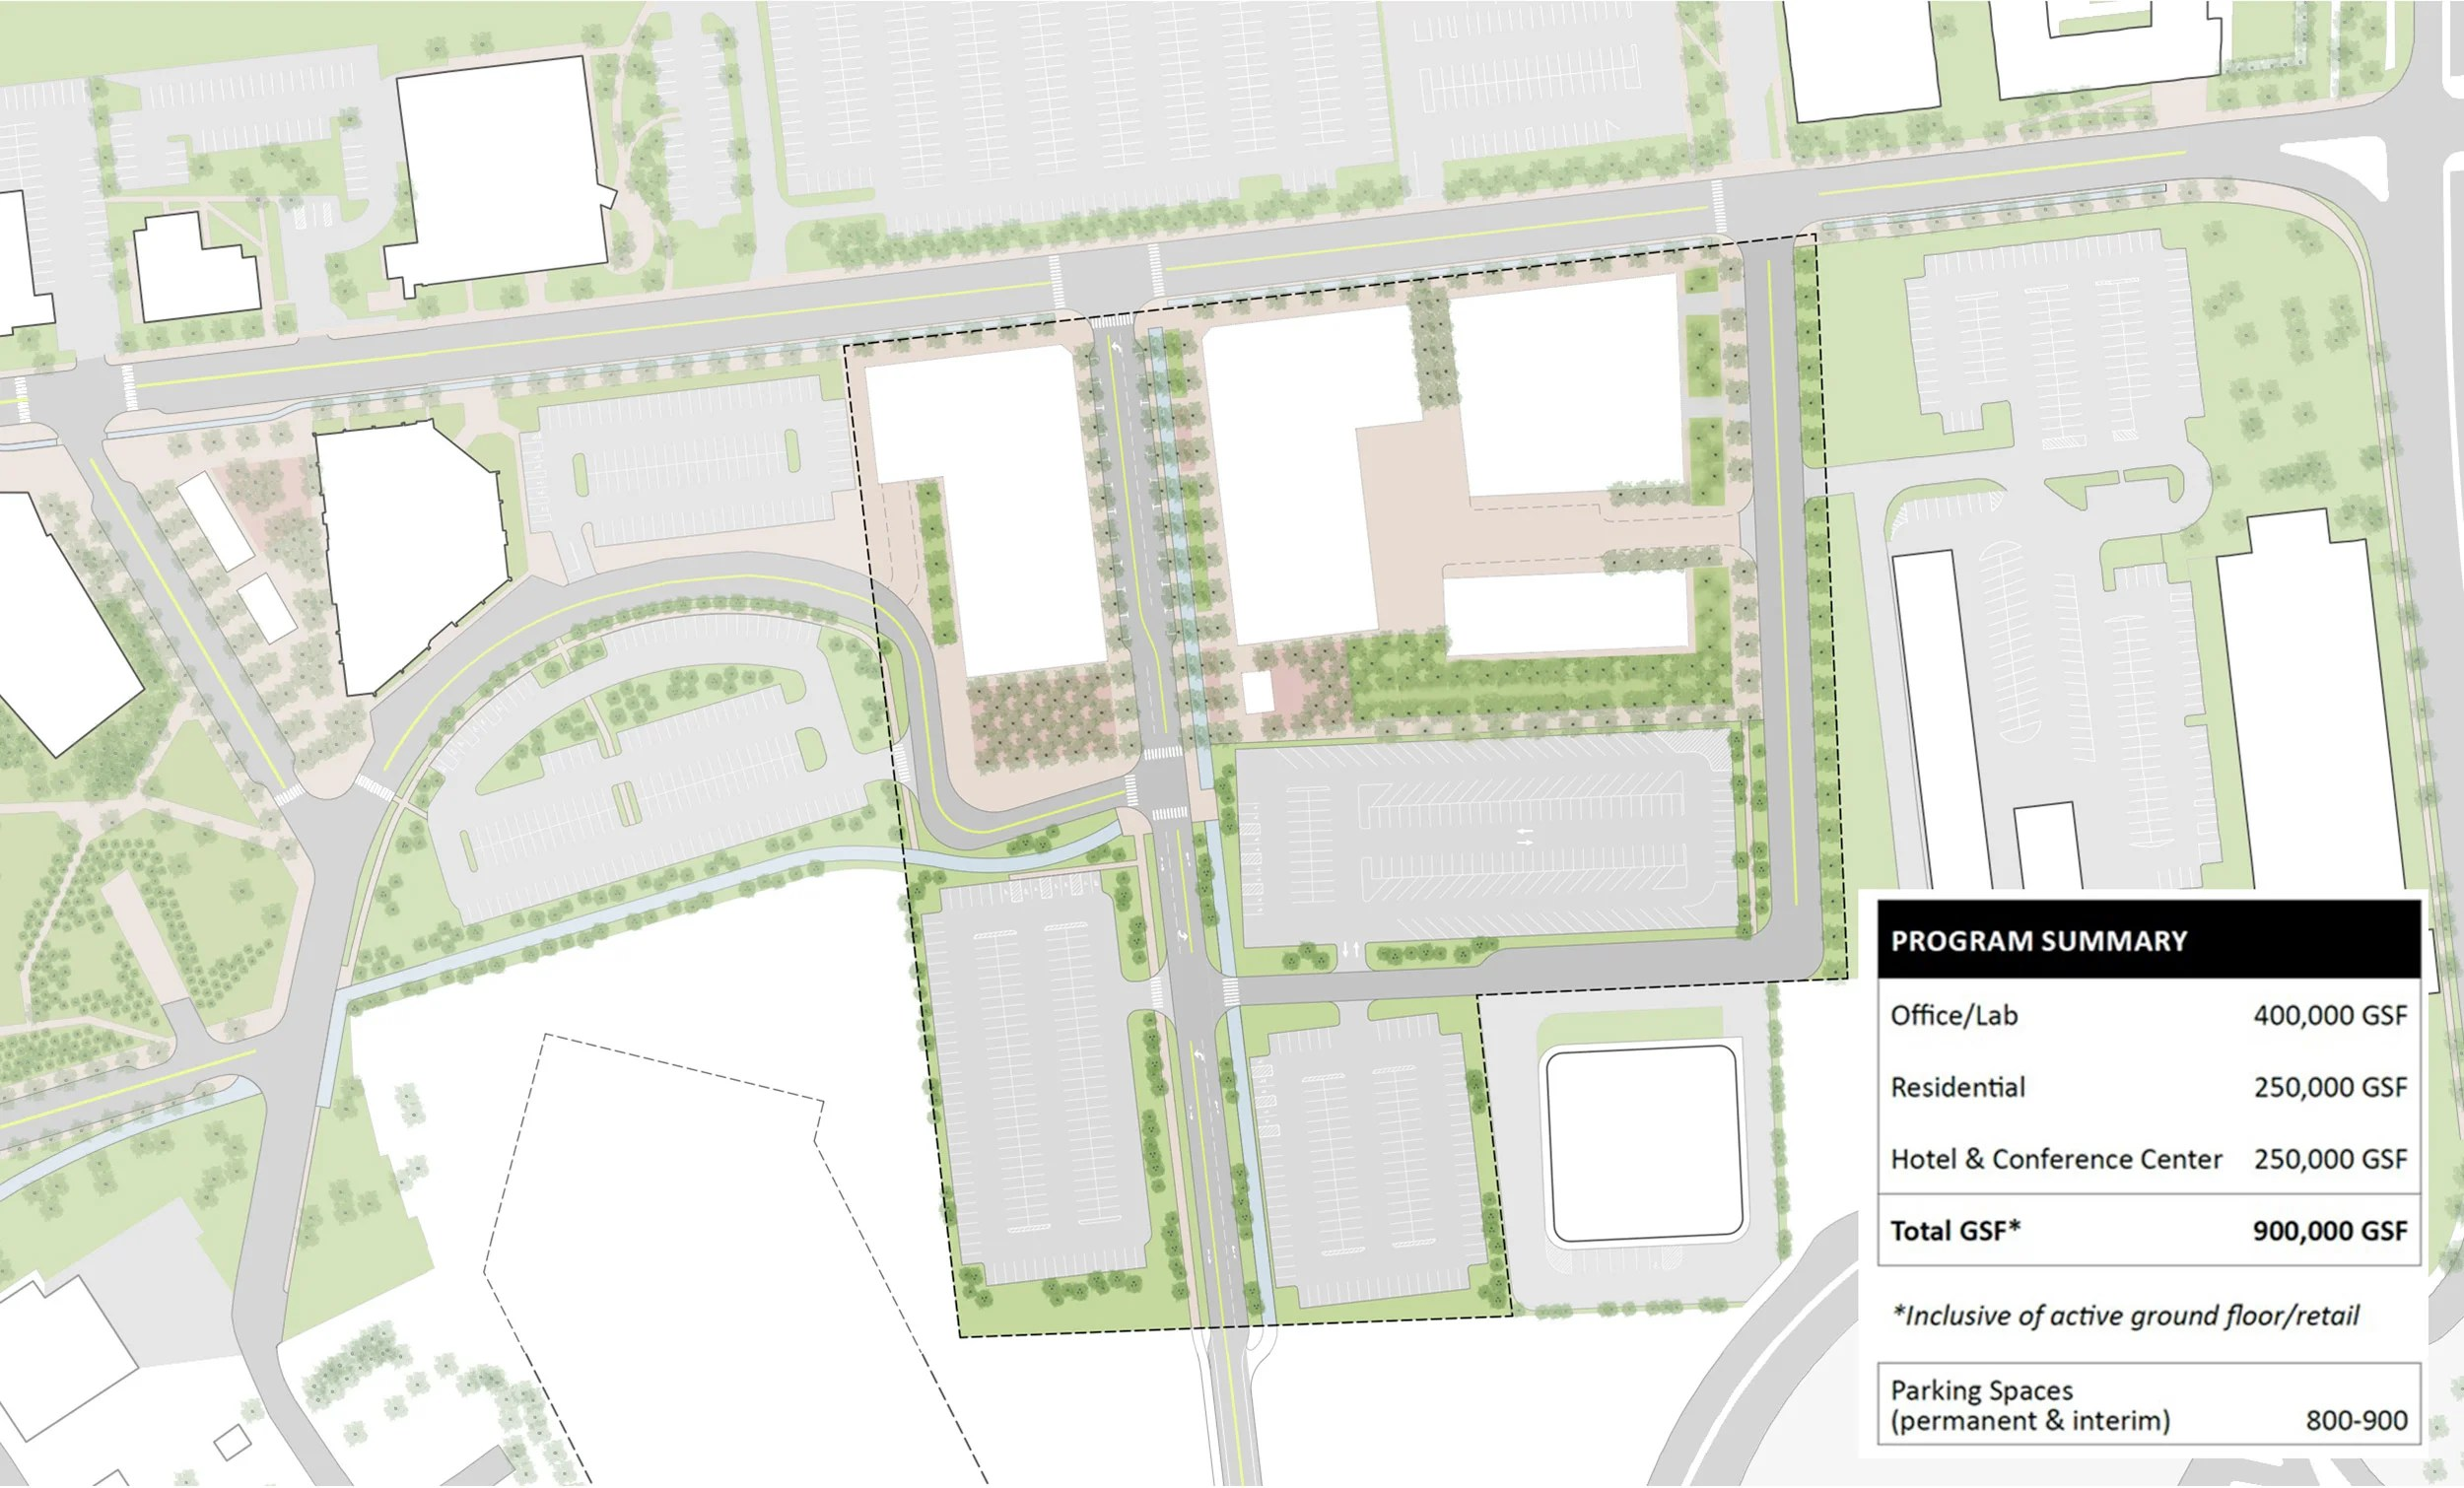 Planned Development Area Master Plan uses.